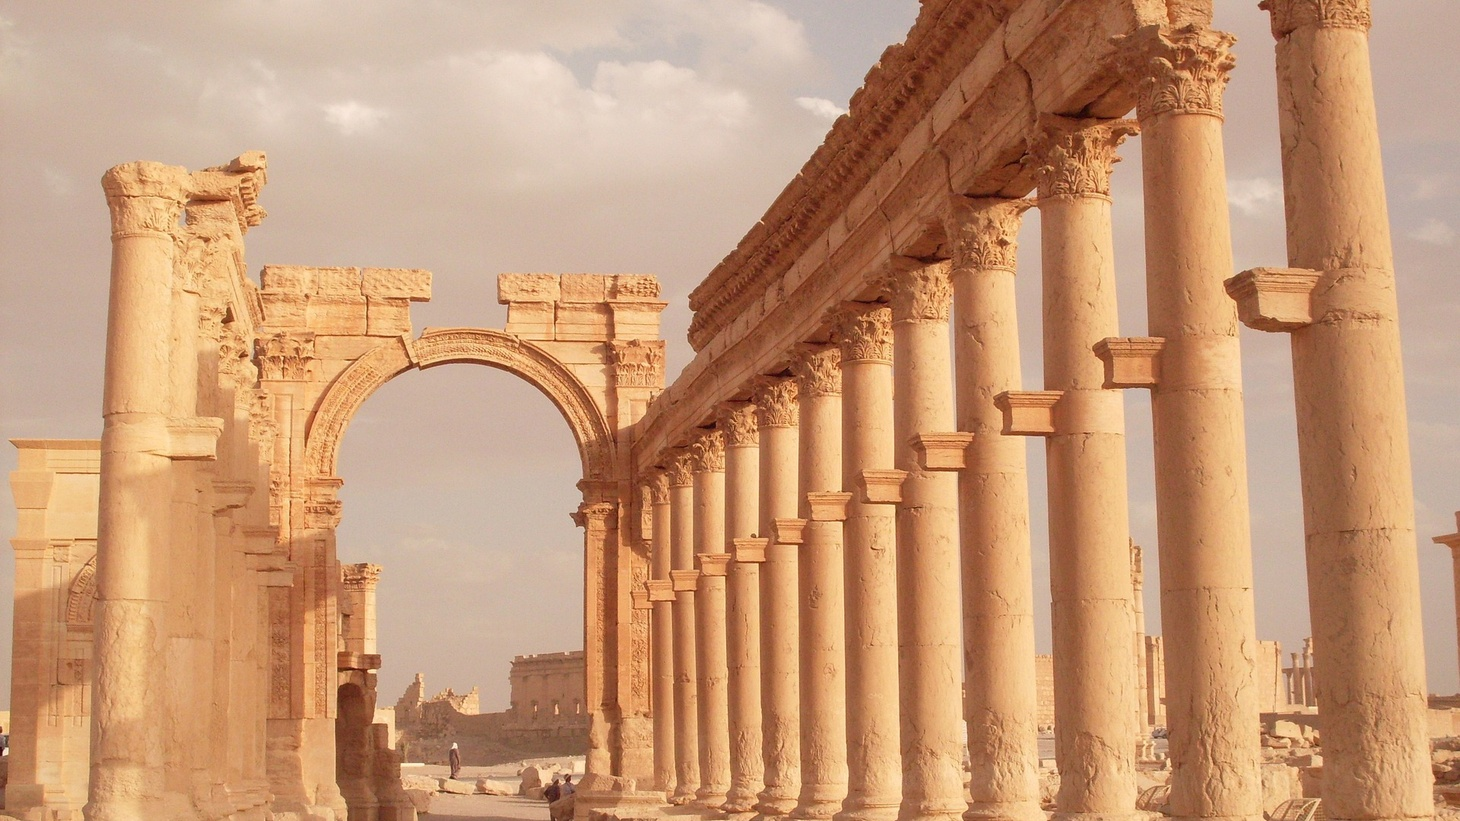 Among its many crimes, the Islamic State is trafficking in ancient artifacts stolen from Palmyra and other ancient places. How big is the international black market? Who should have custody of cultural treasures?